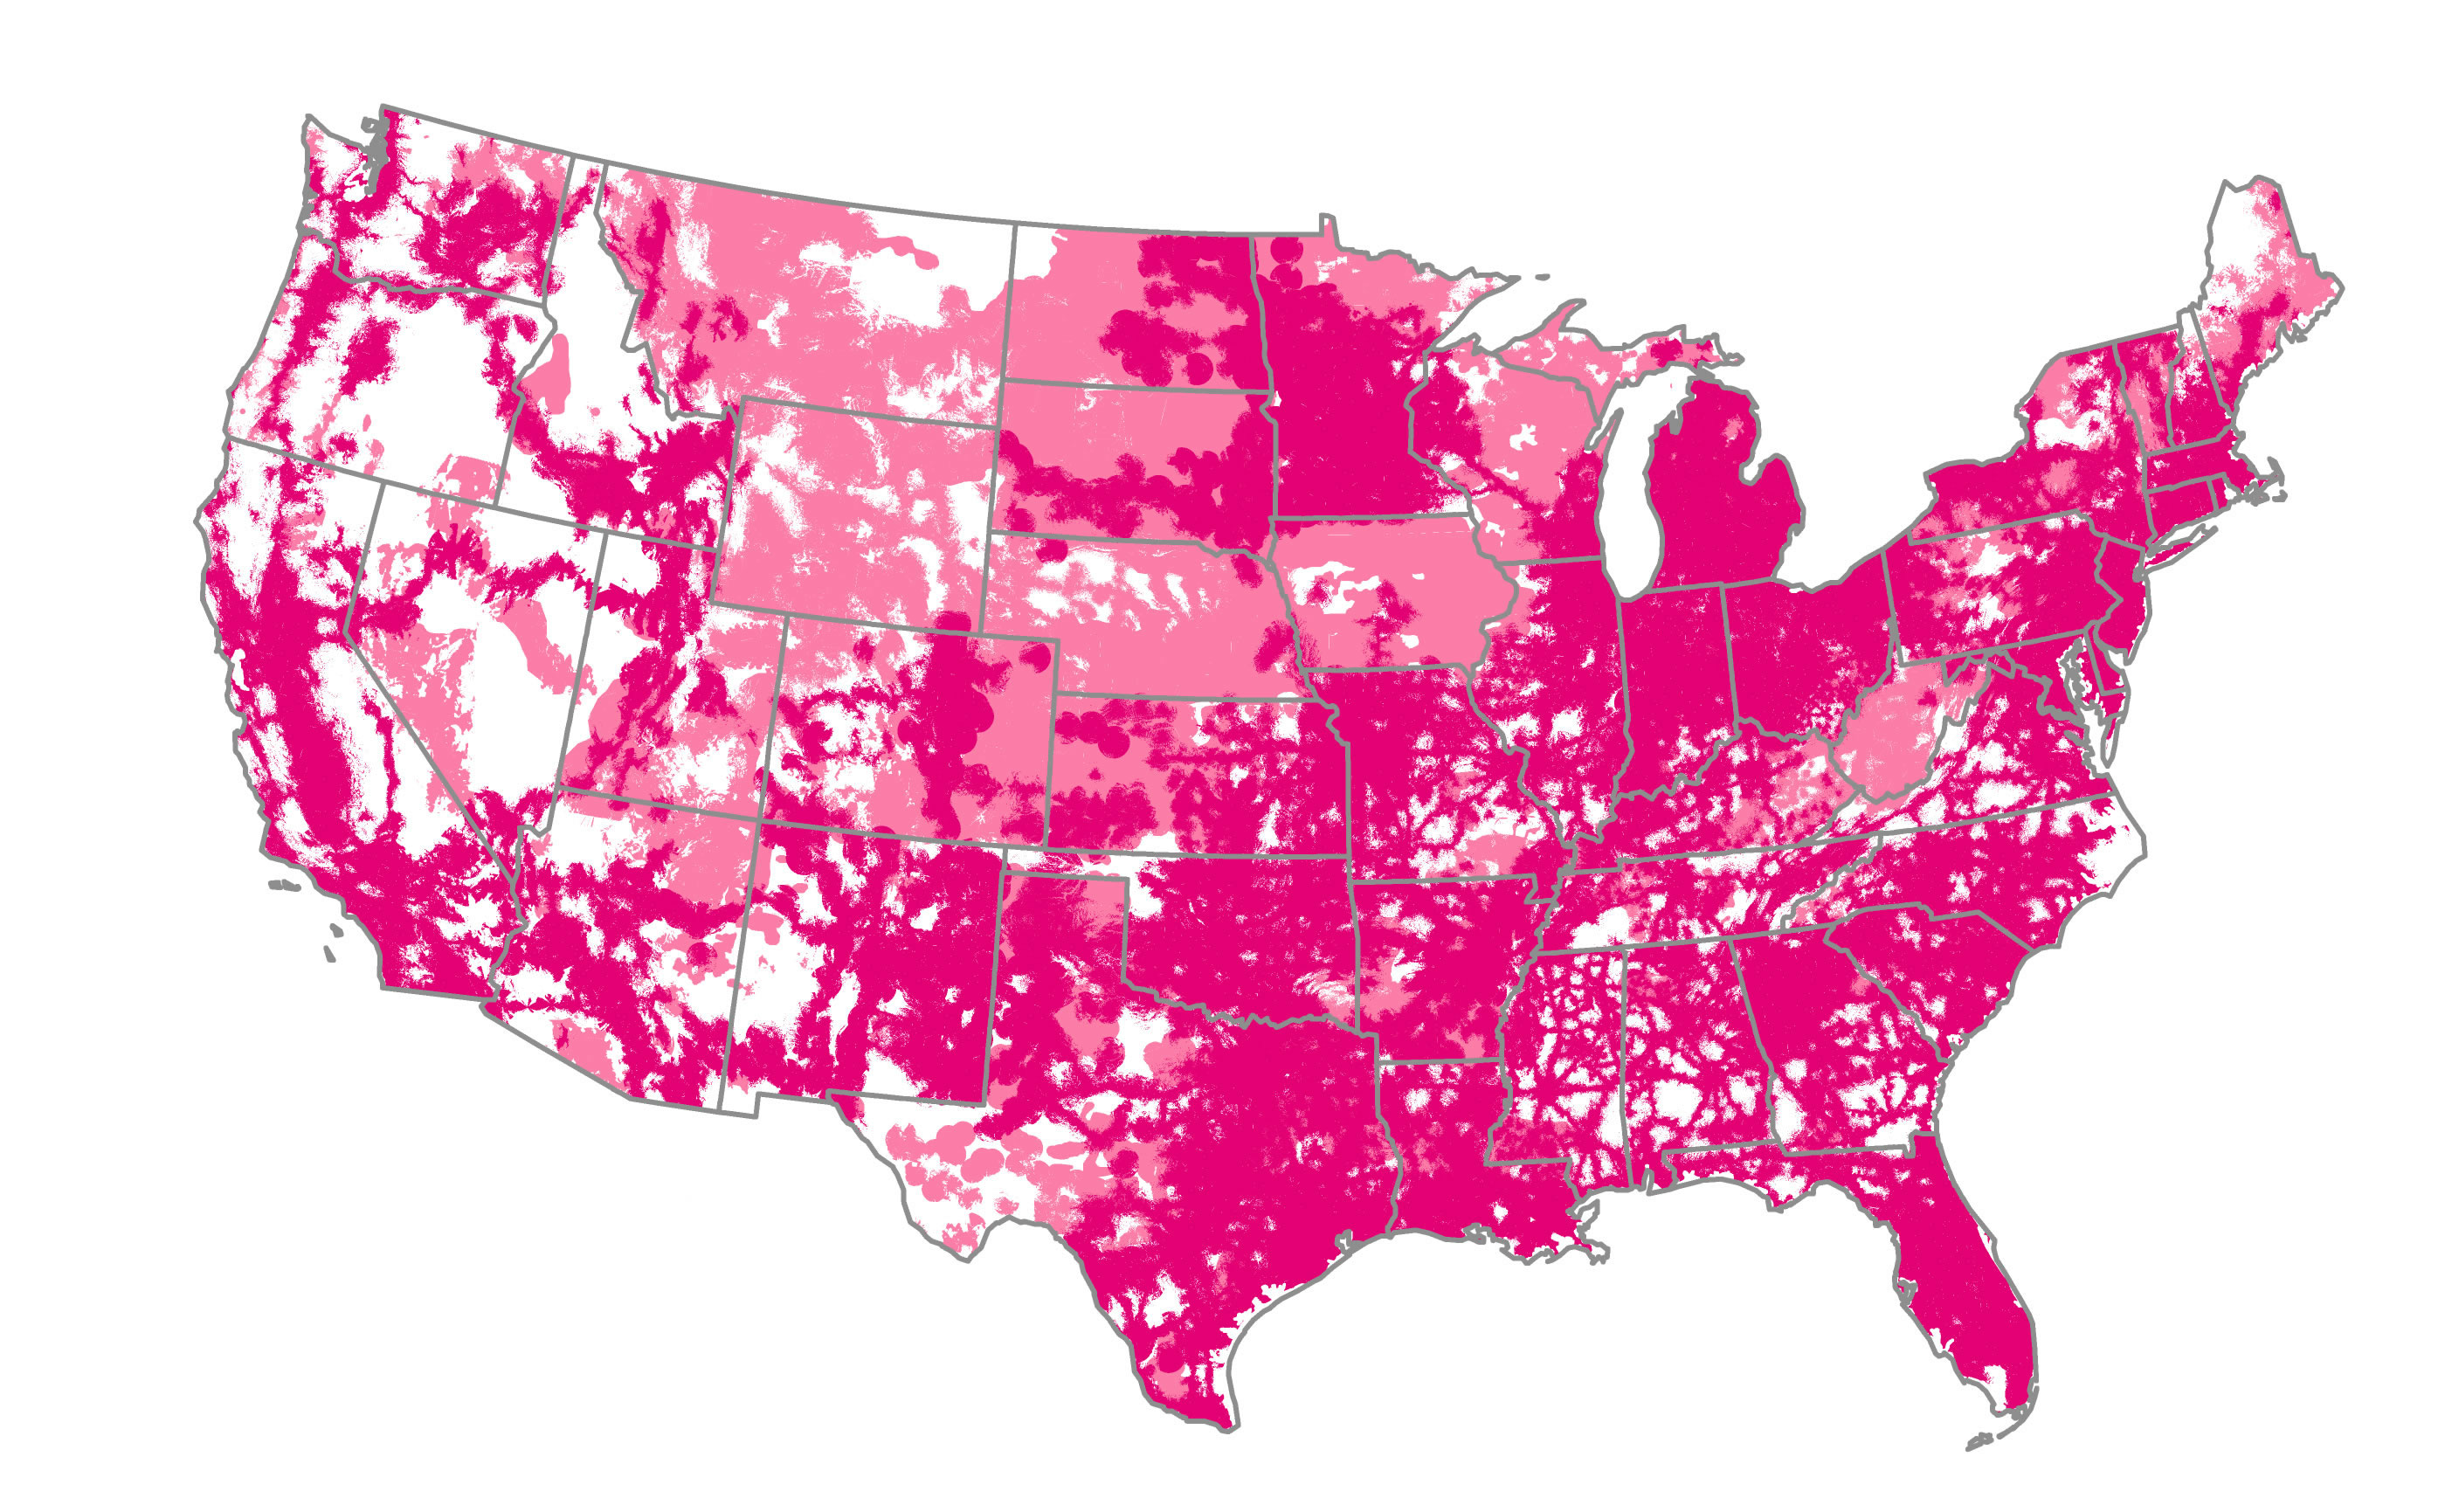 4g lte coverage map